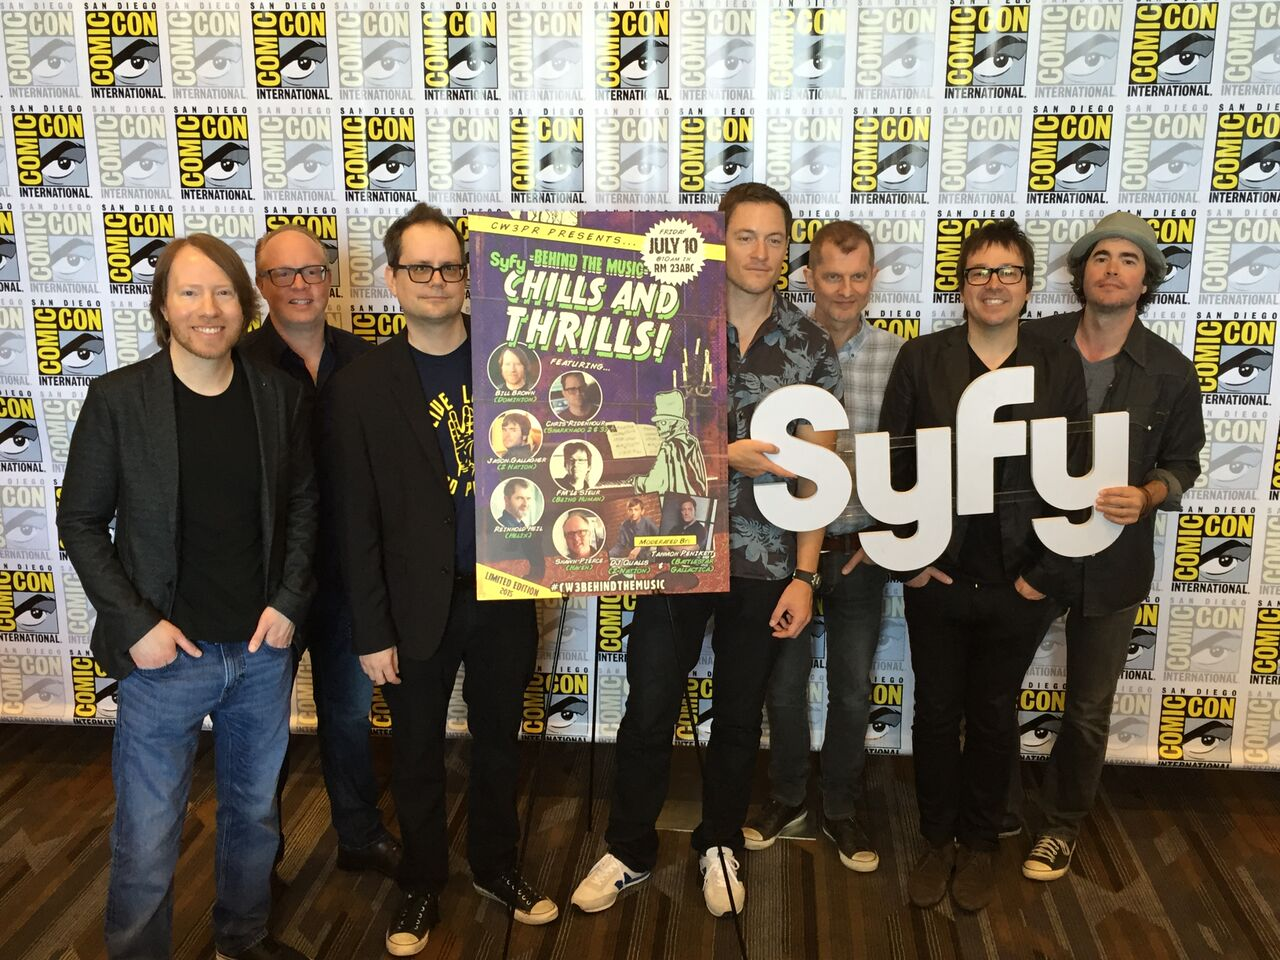 SyFy Thrillis and Chills Behind the Music